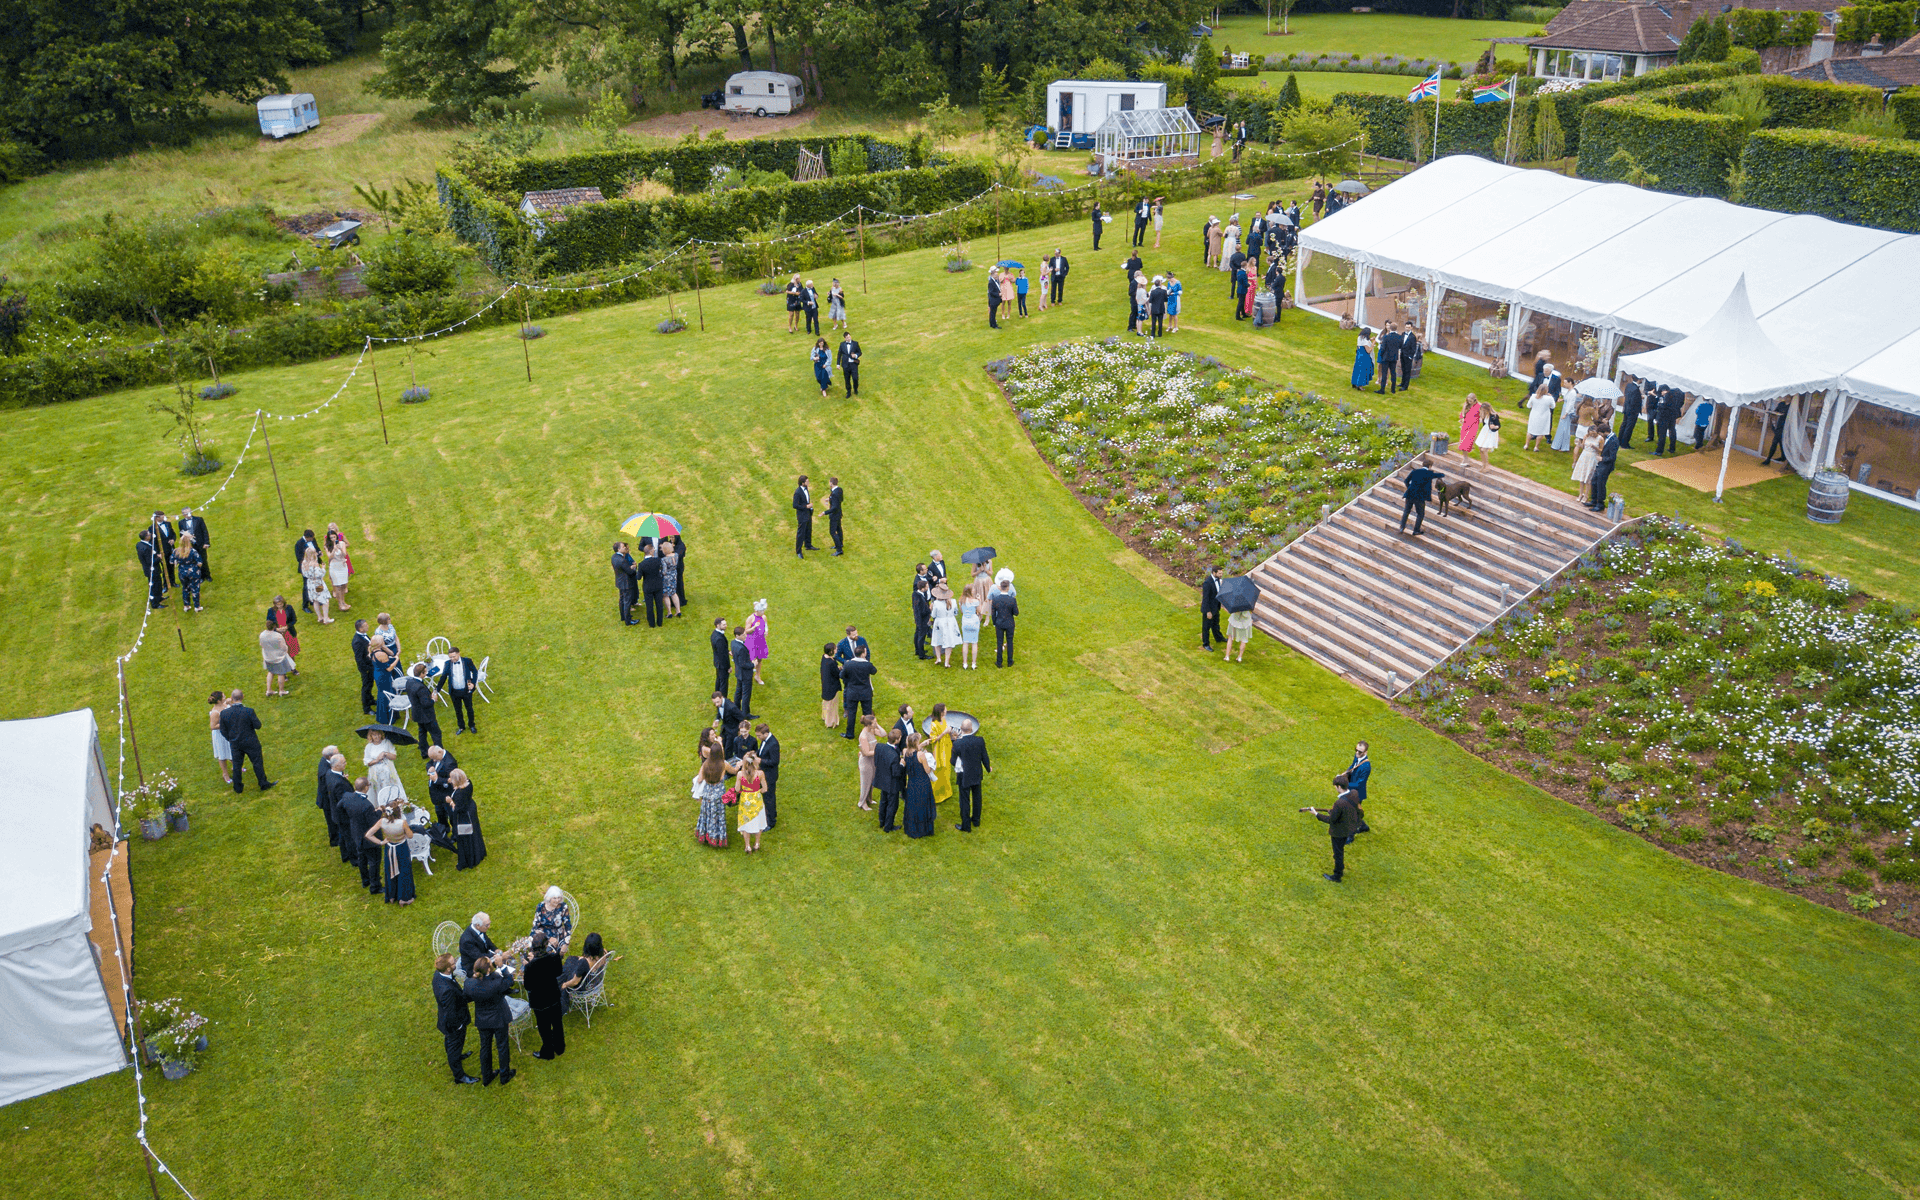 """Mavic Pro"" aerial drone photo of a wedding part and venue in Compton Martin, Bristol"